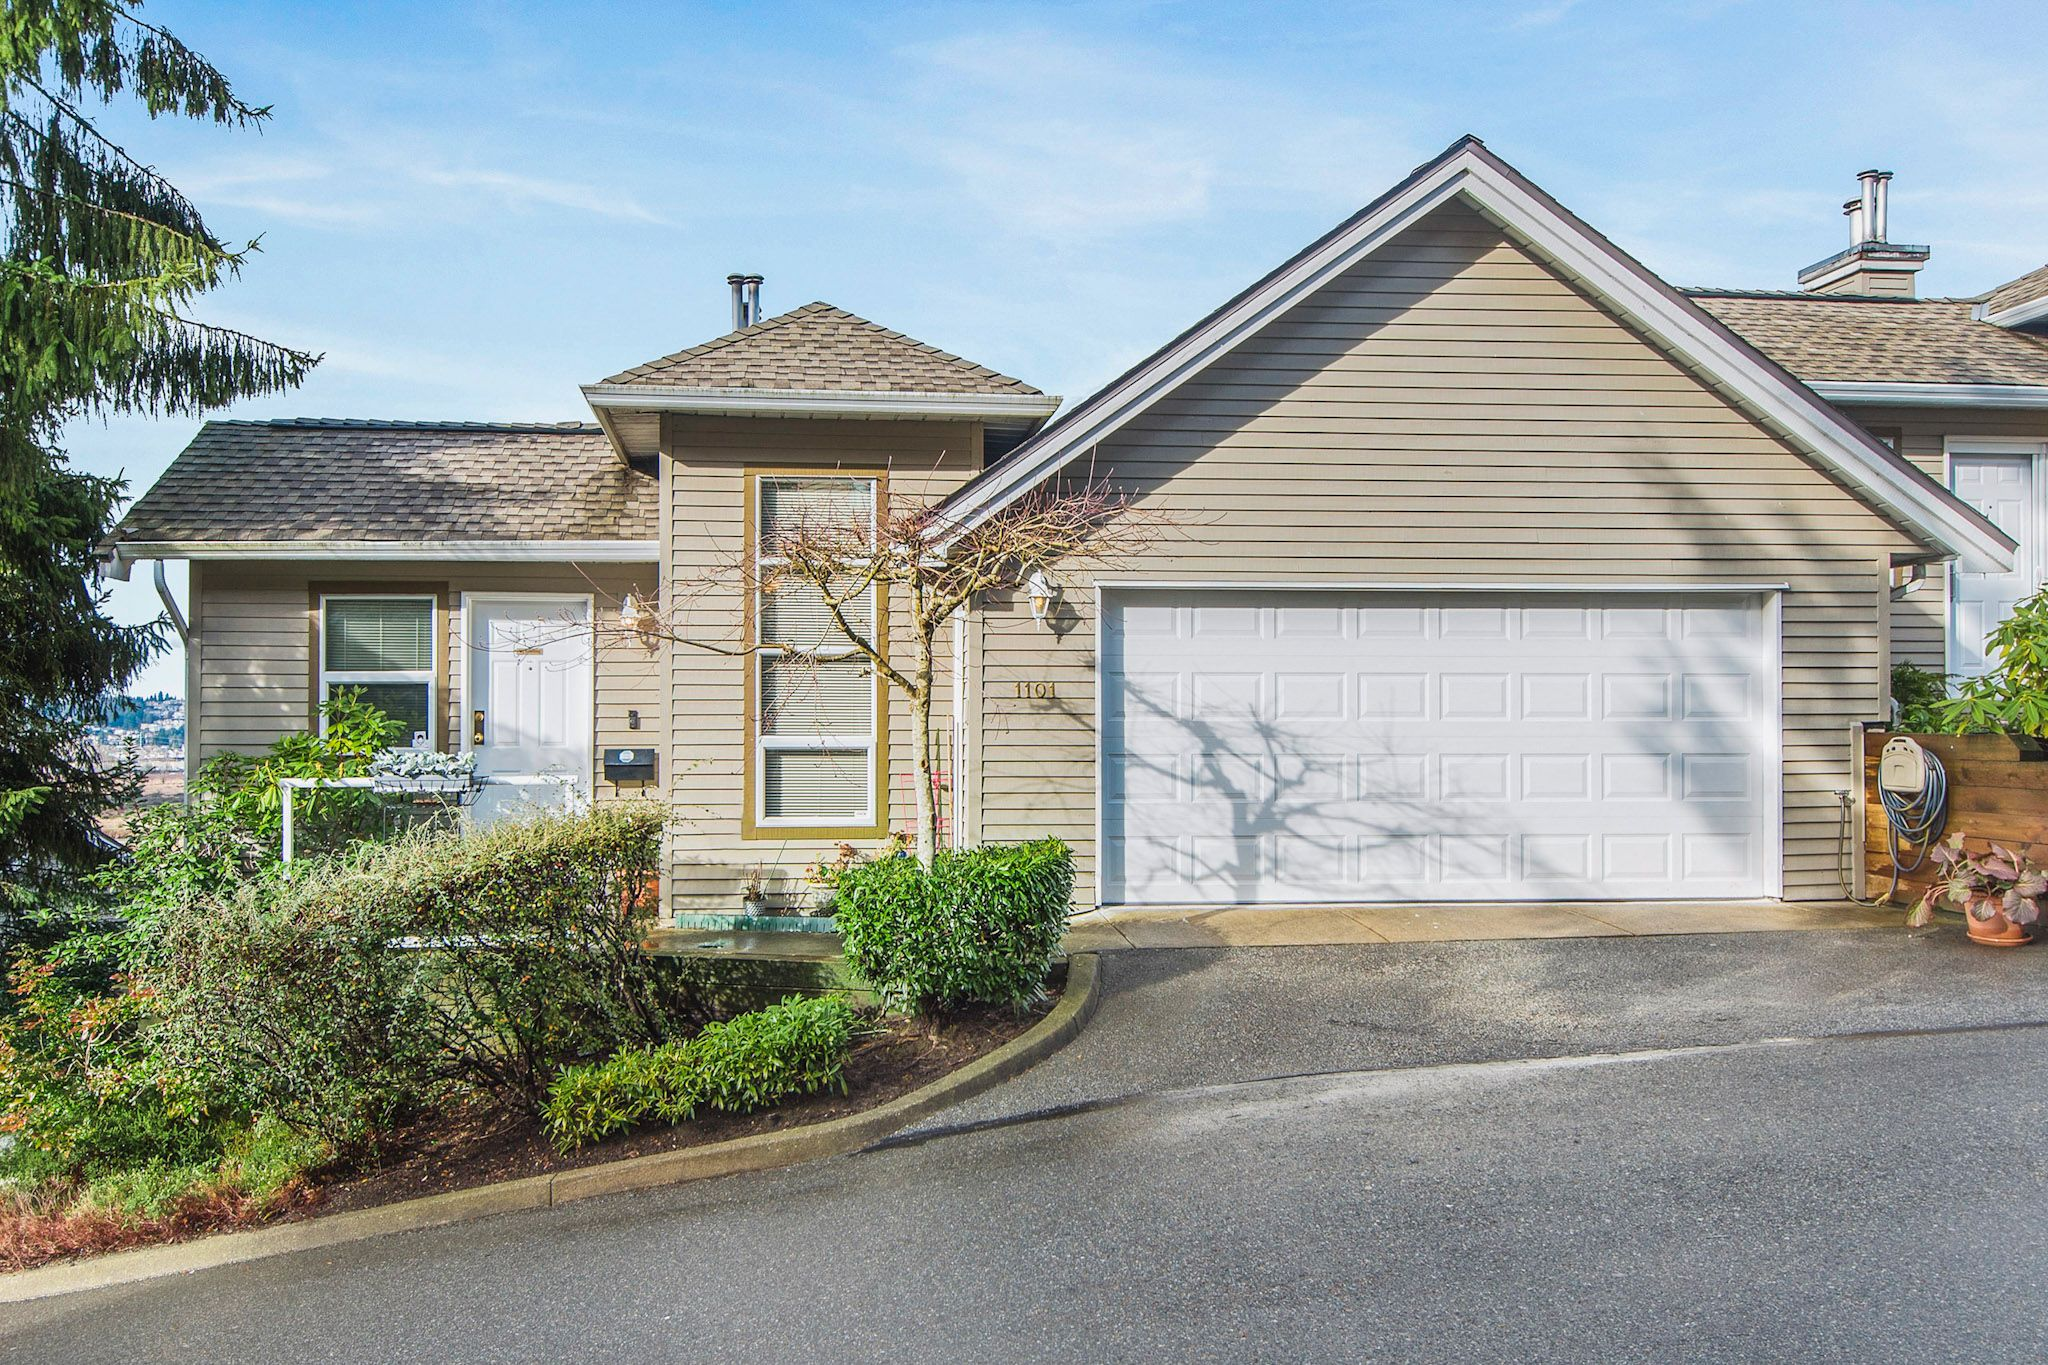 "Main Photo: 1101 BENNET Drive in Port Coquitlam: Citadel PQ Townhouse for sale in ""The Summit"" : MLS®# R2235805"